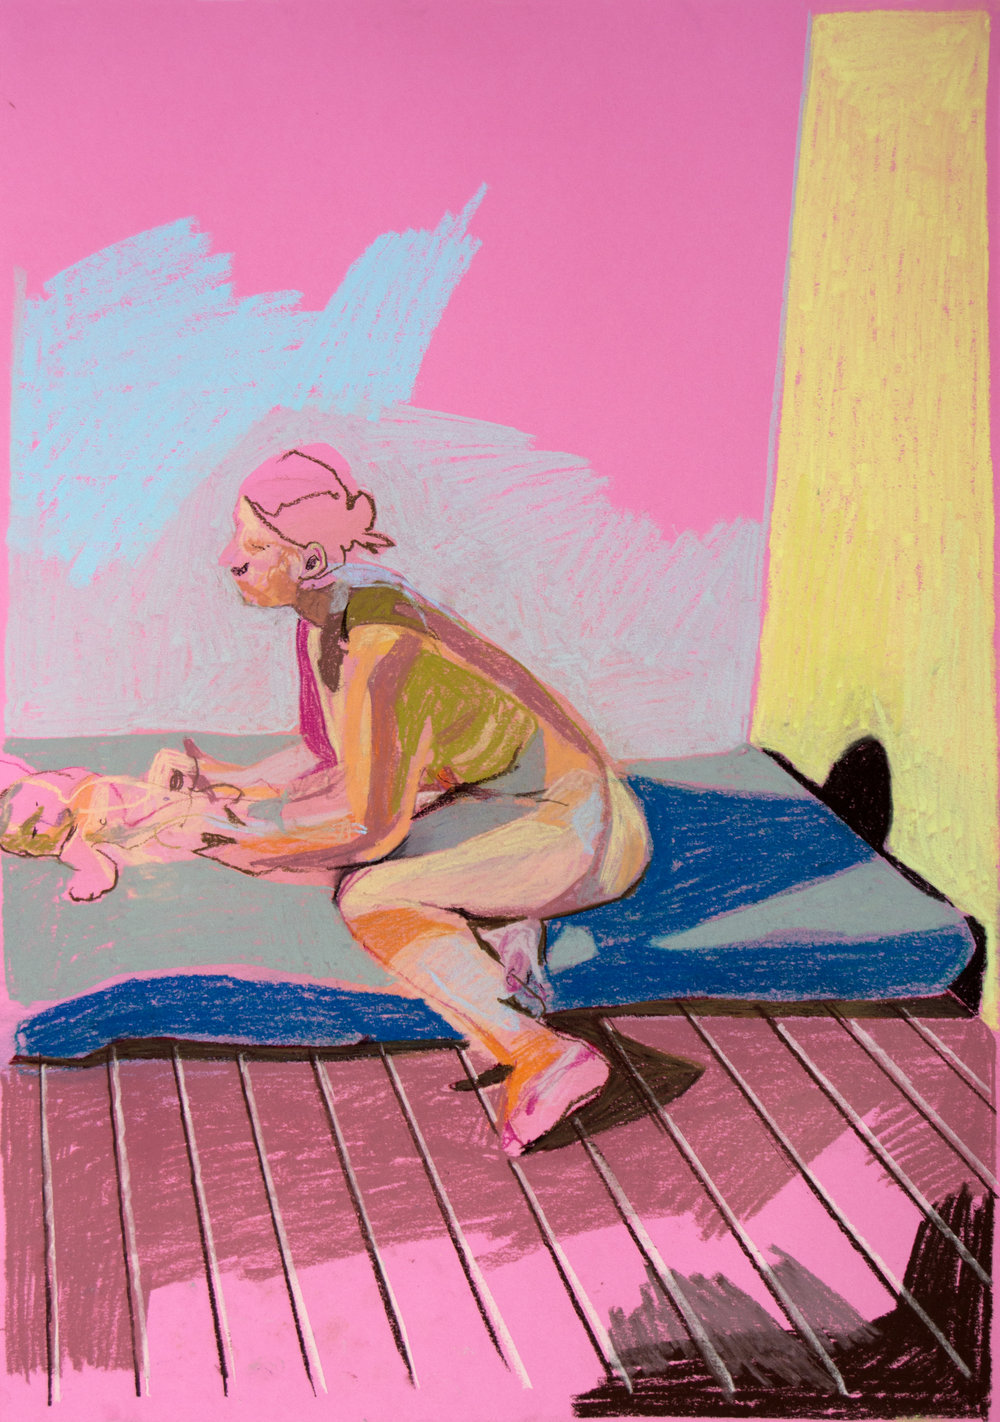 'Mother, model and child on pink with yellow wall', 2018, pastel, 59.3 x 42cm, £590  Available from  Partnership Editions